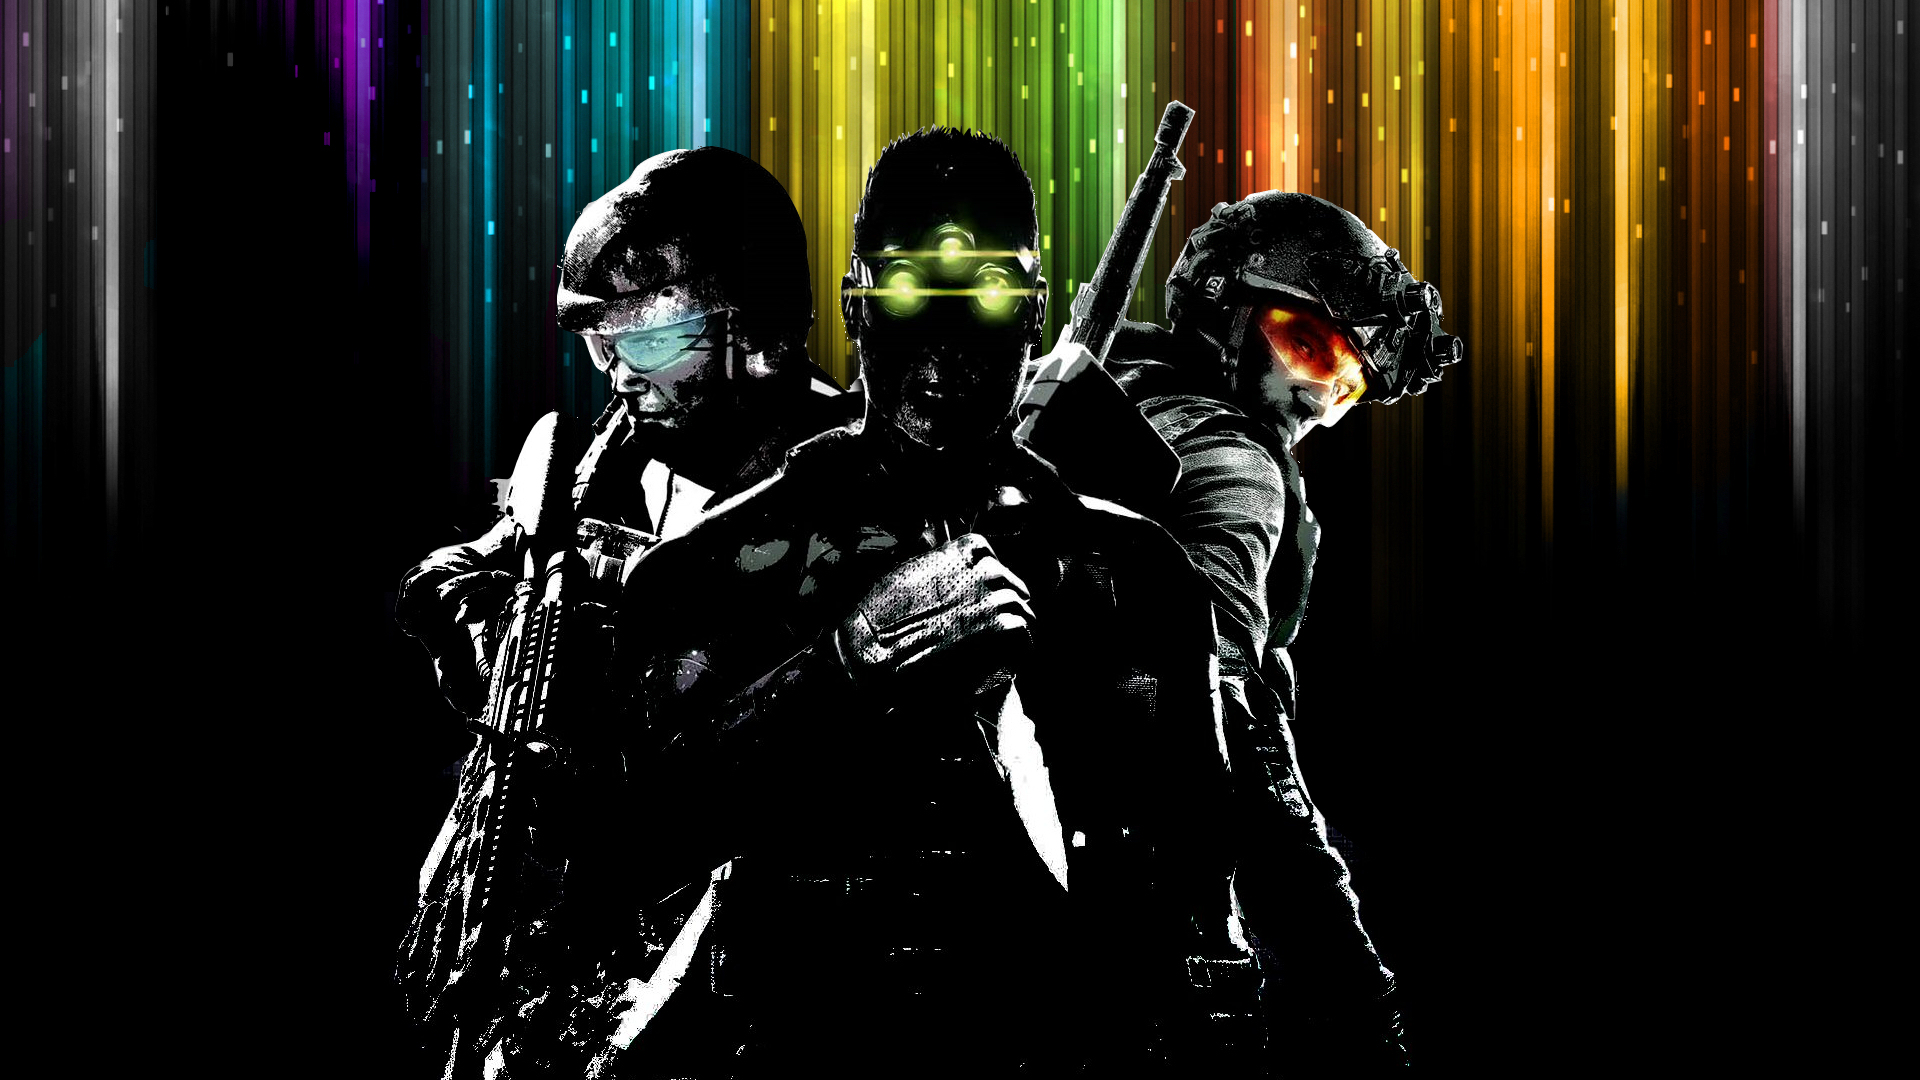 Tom Clancy Wallpapers 38613 1920x1080 px